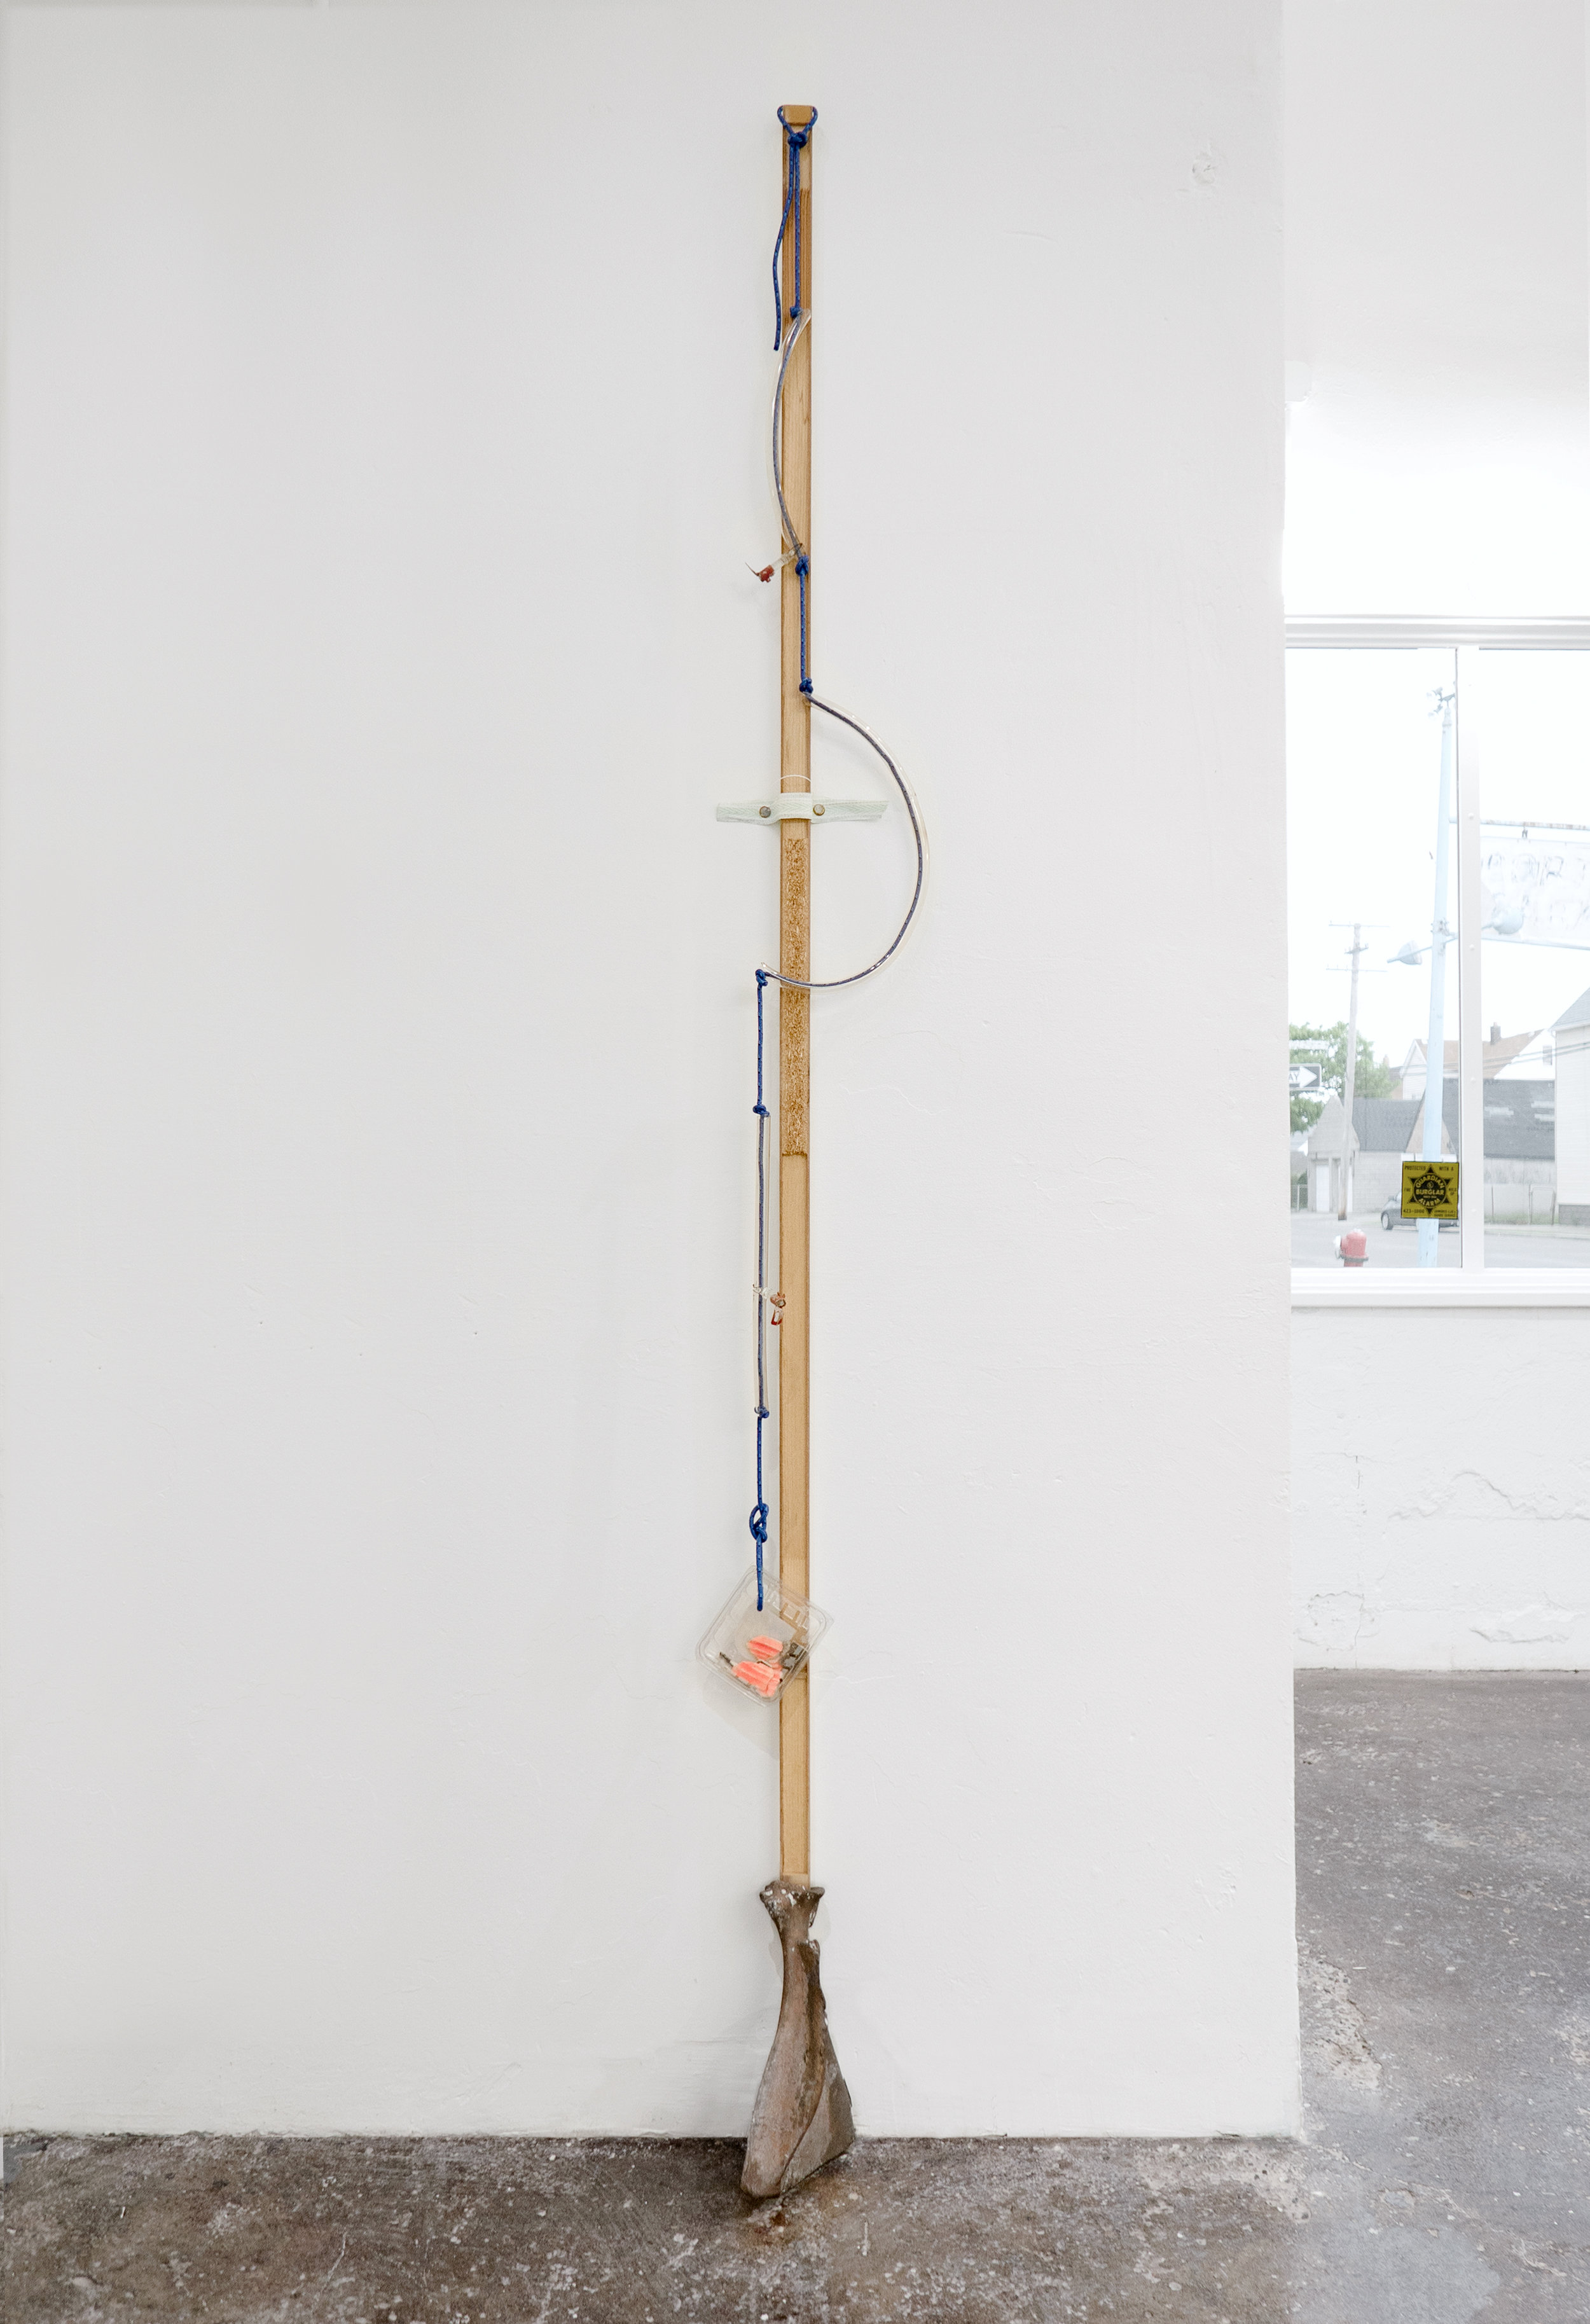 Matt Siegel,  N , 2019, Raw bronze, hollow core door, accessory cord, neon glass tubing (sourced: abandoned China Buffet, Evanston, WY), blueberry container, found objects, wind, 92 x 8 x 5 in